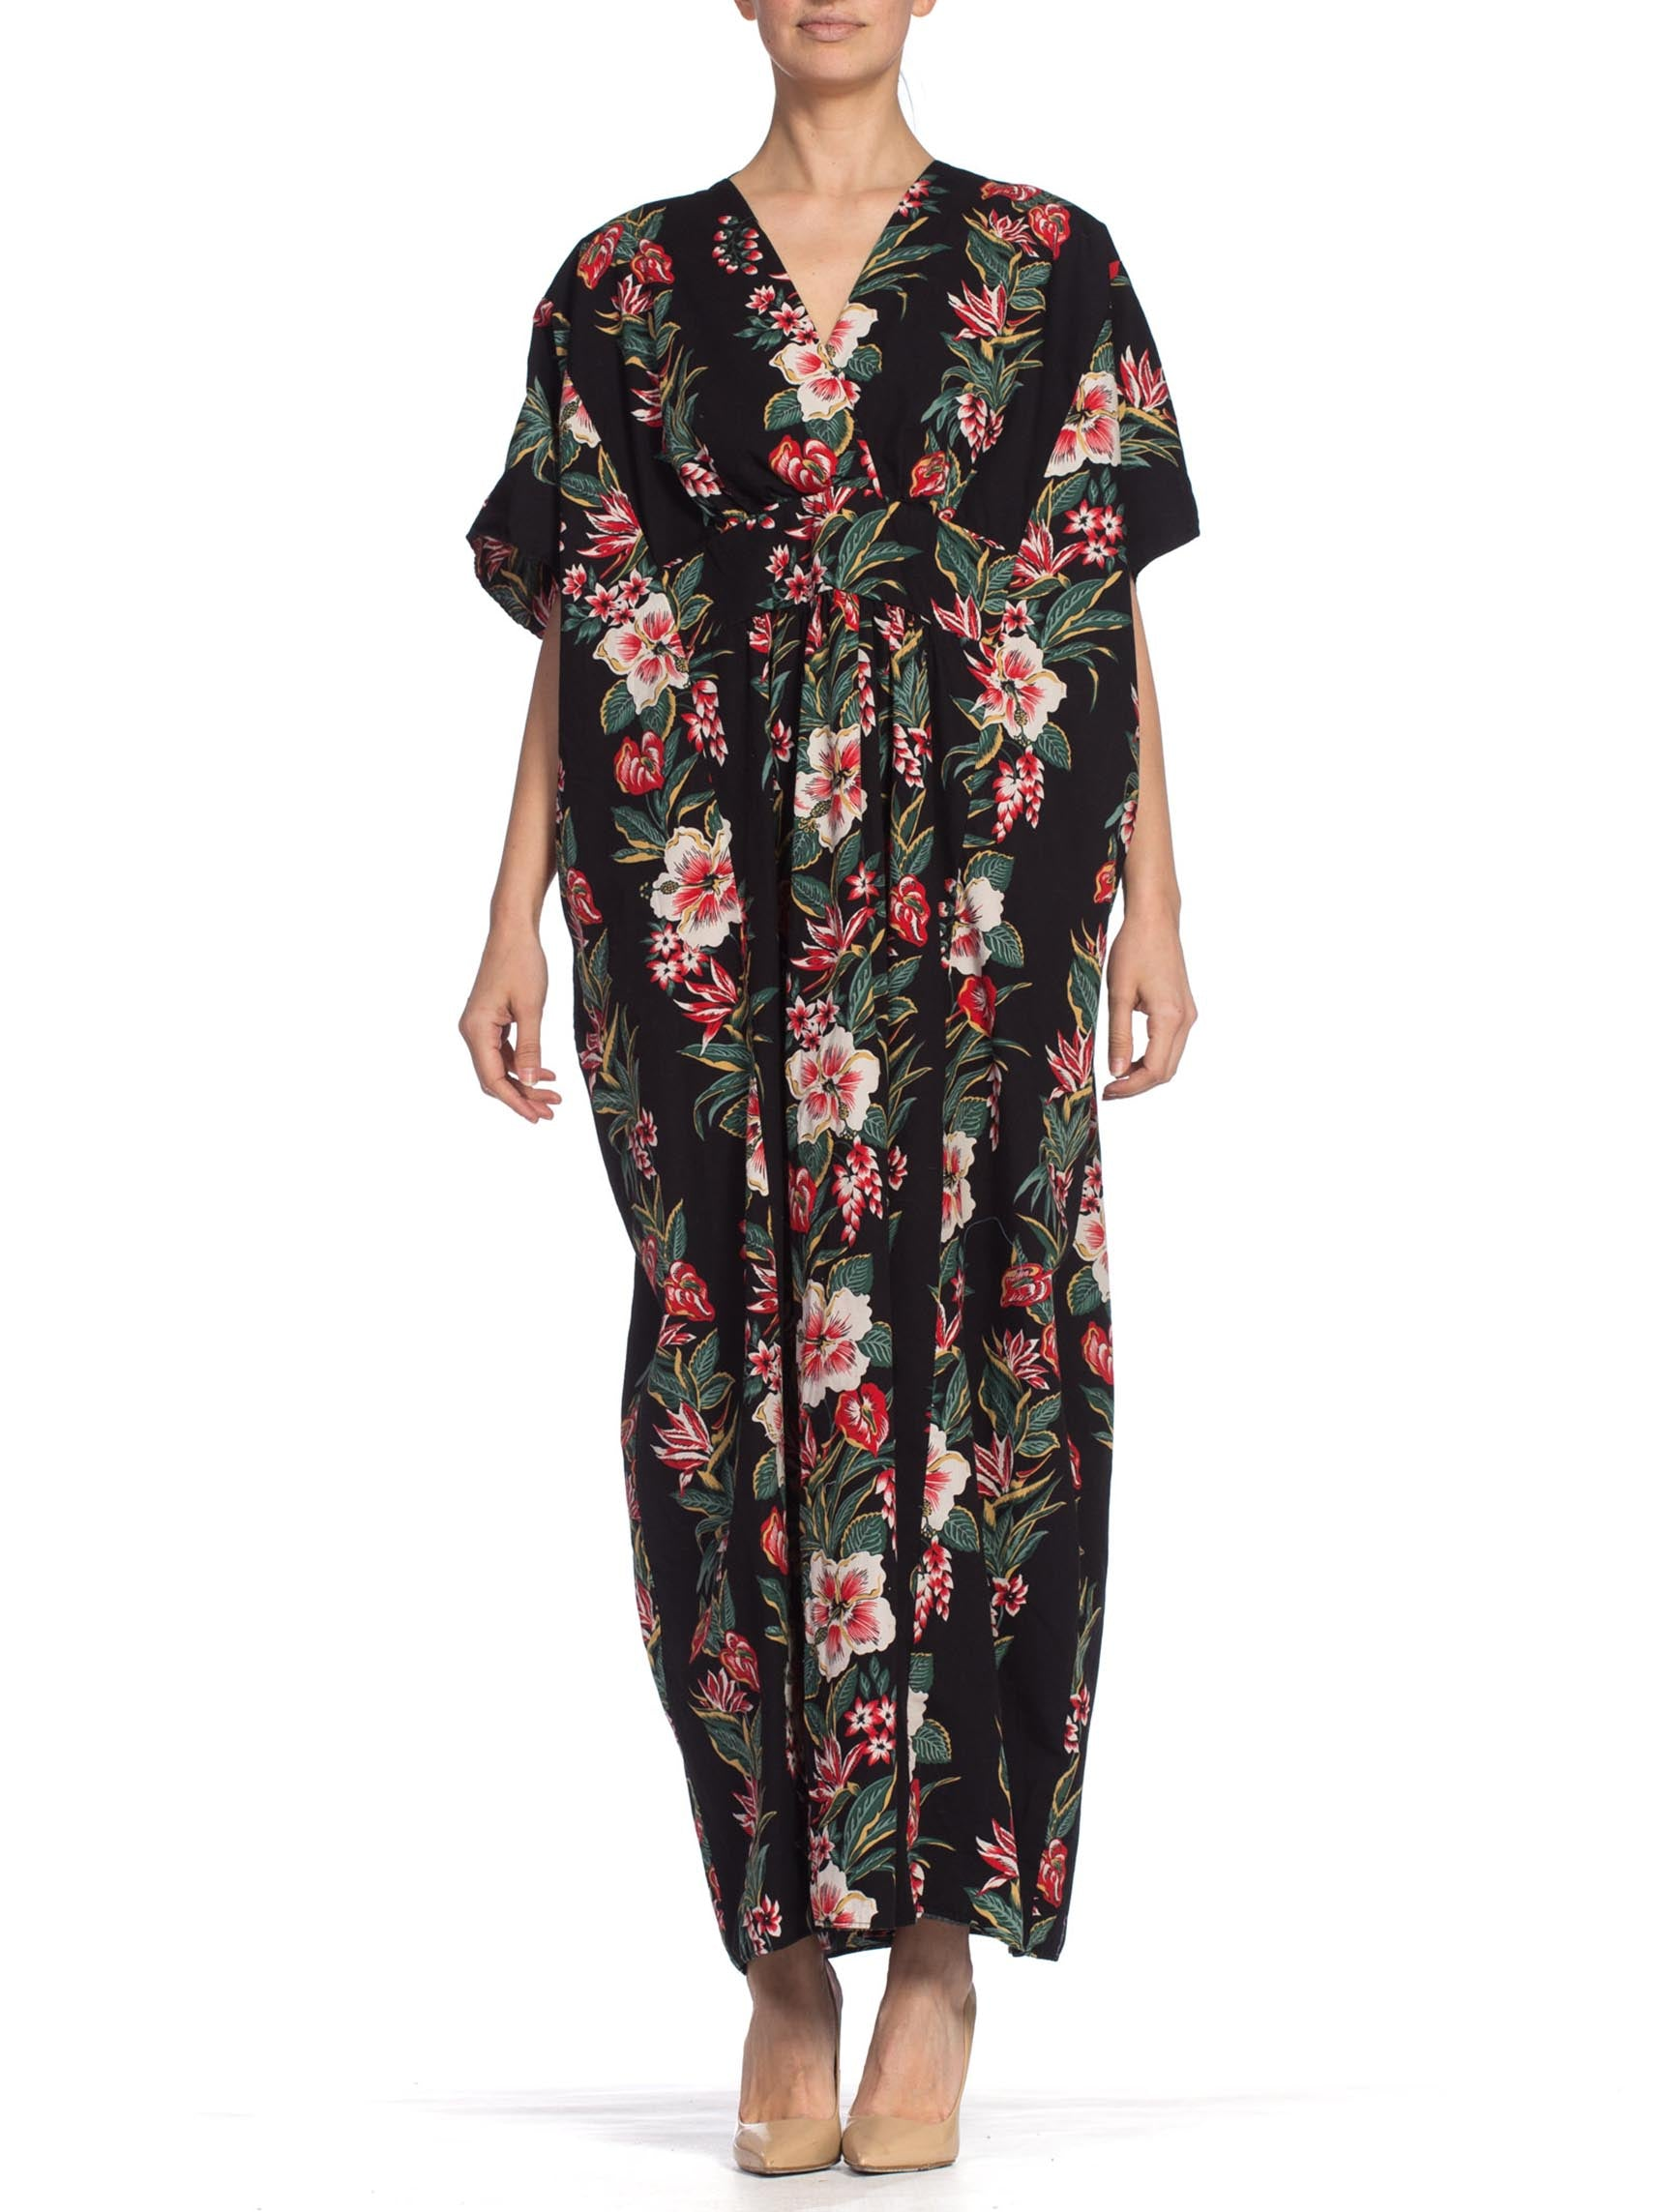 1970S Black & Red Cotton Tropical Floral Hawaiian Printed Kaftan